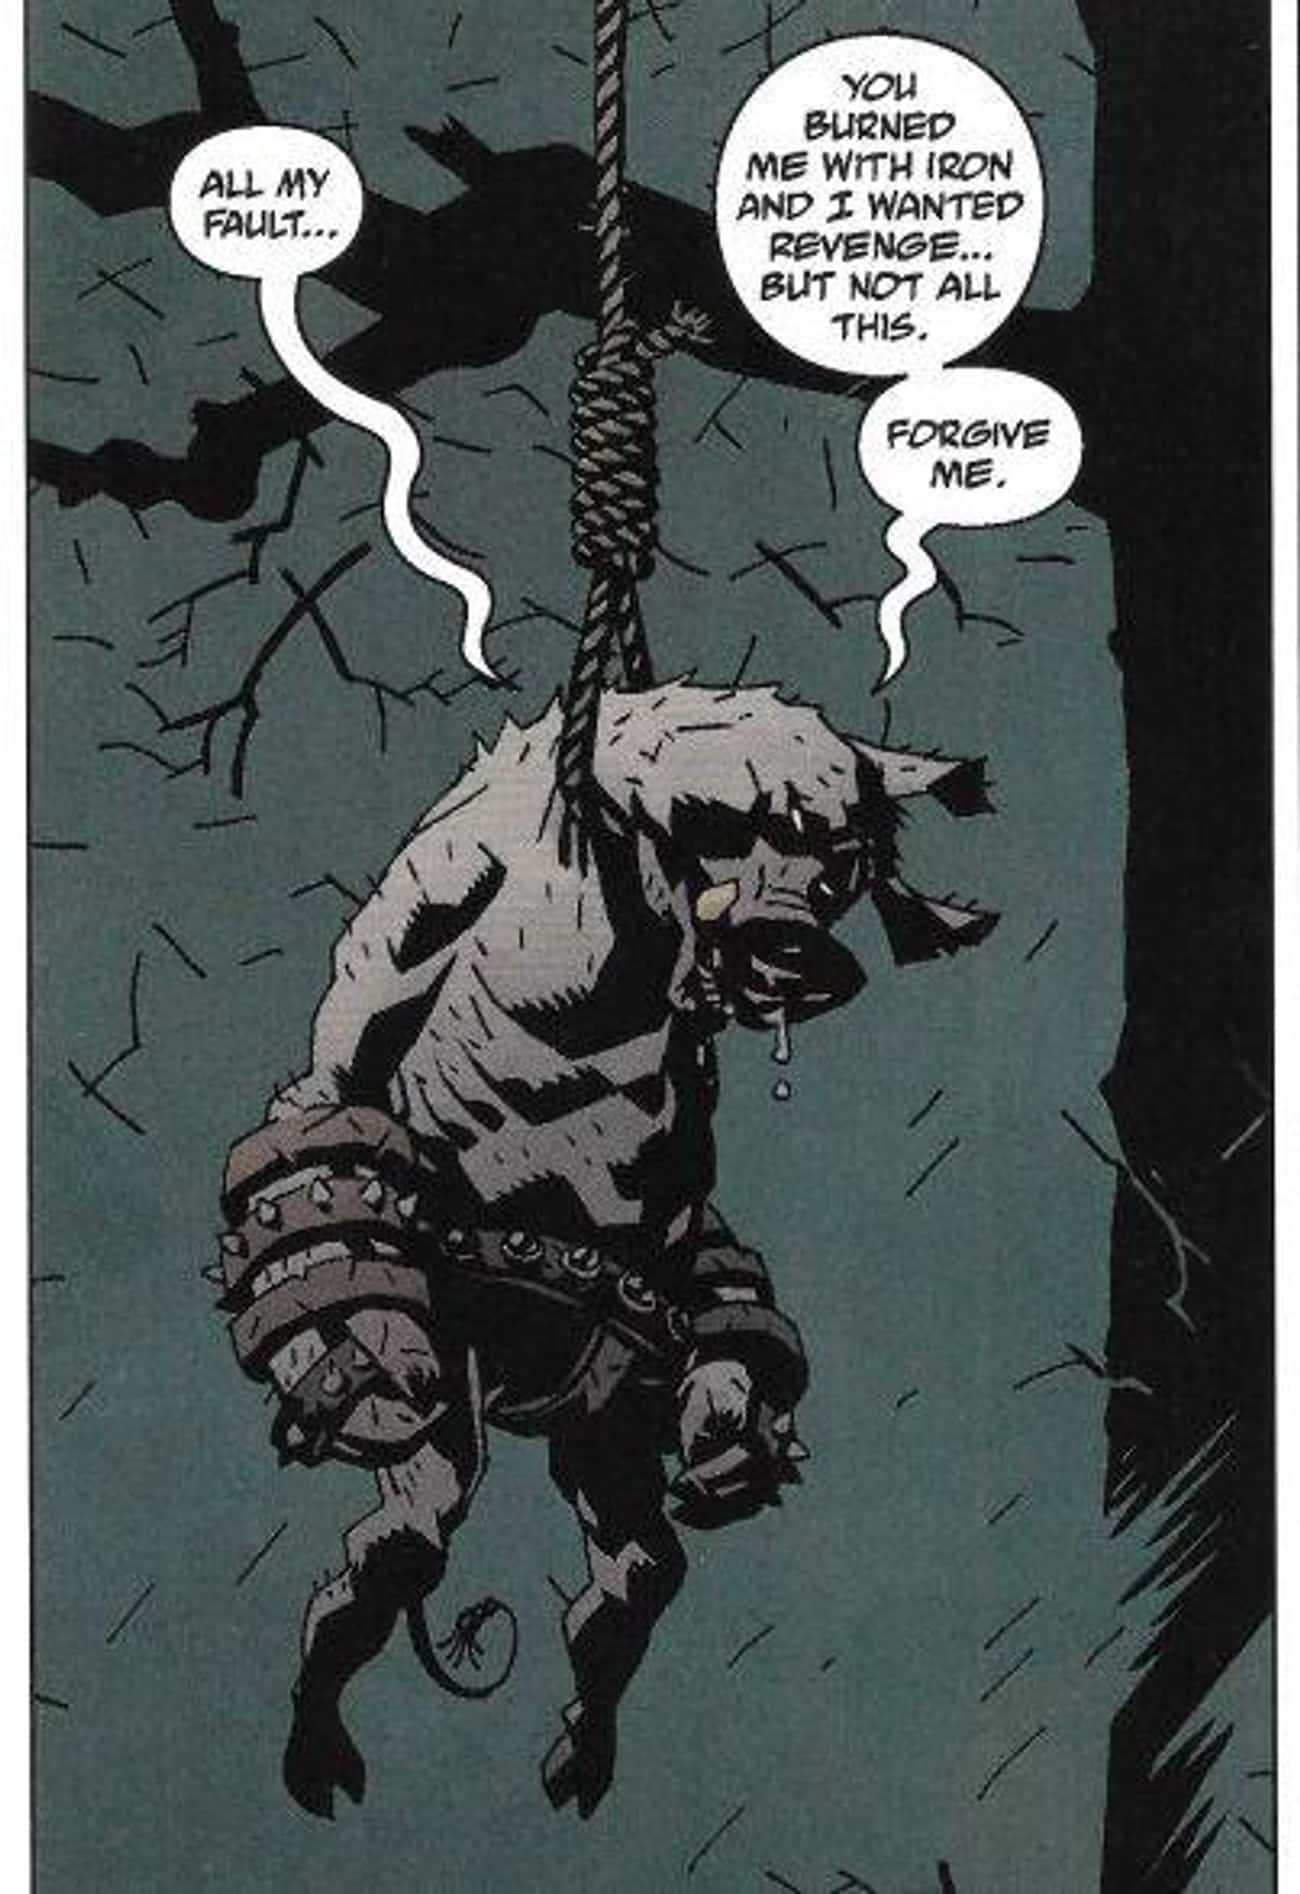 Gruagach Tries To Take His Own is listed (or ranked) 2 on the list The Most Violent Moments From 'Hellboy' Comics